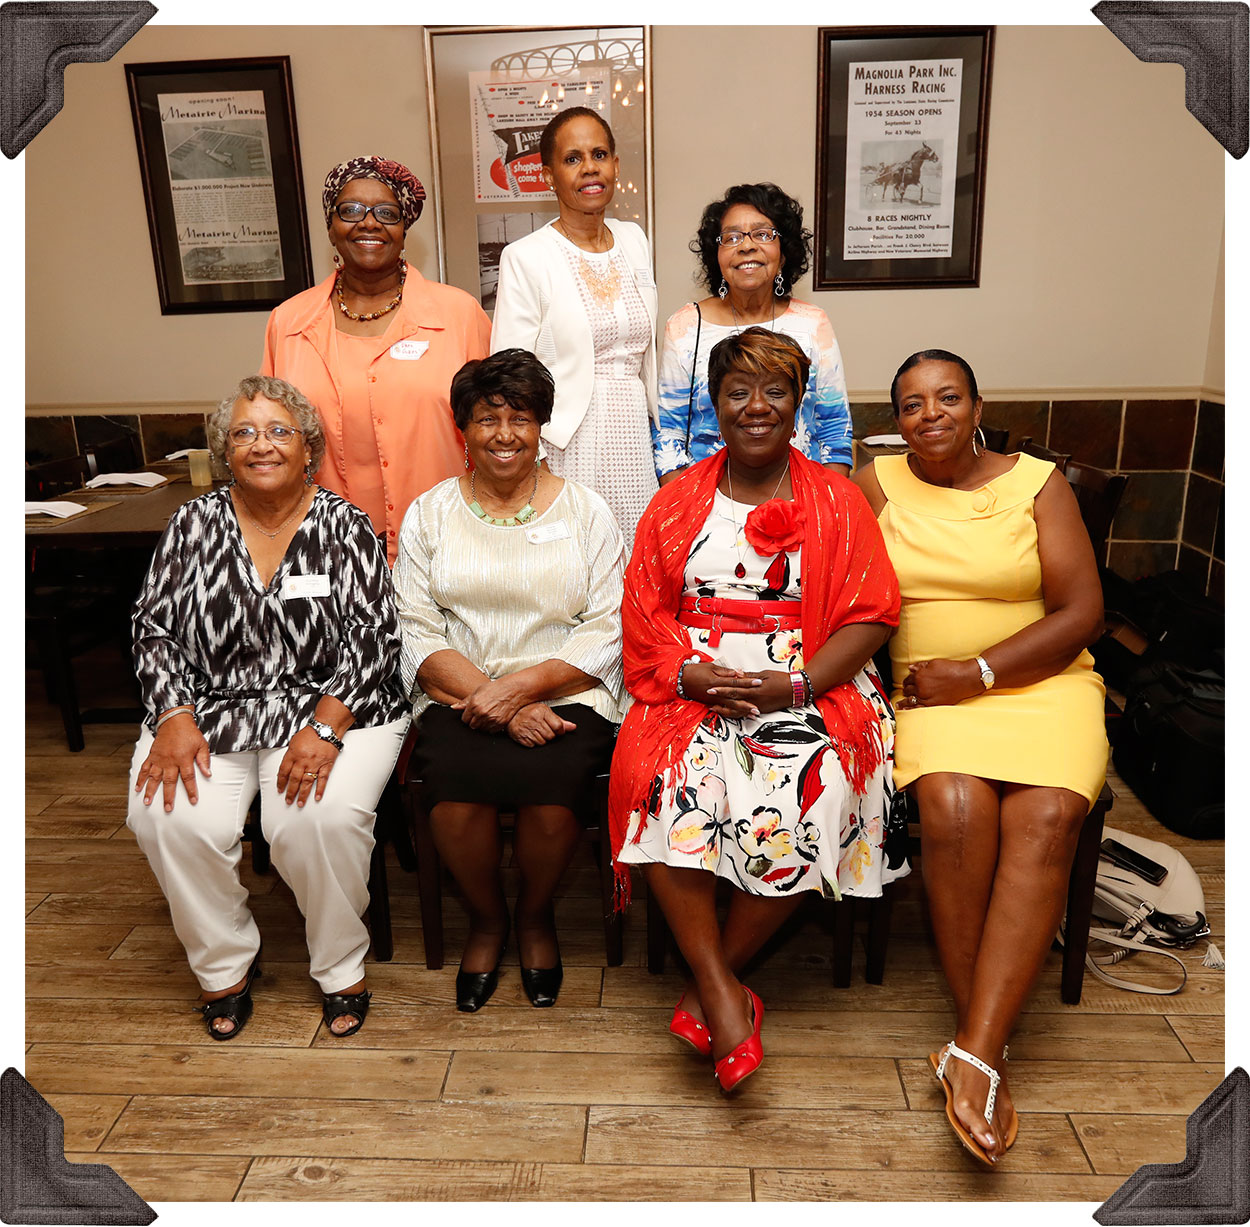 Class of '71 - Standing:  Rhea Dokes, Raphael Morgan and Amelia Waters -- Seated:  Cynthia Wingate, Marie Smith, Sandra Cook and Gwen Ellis-Smith